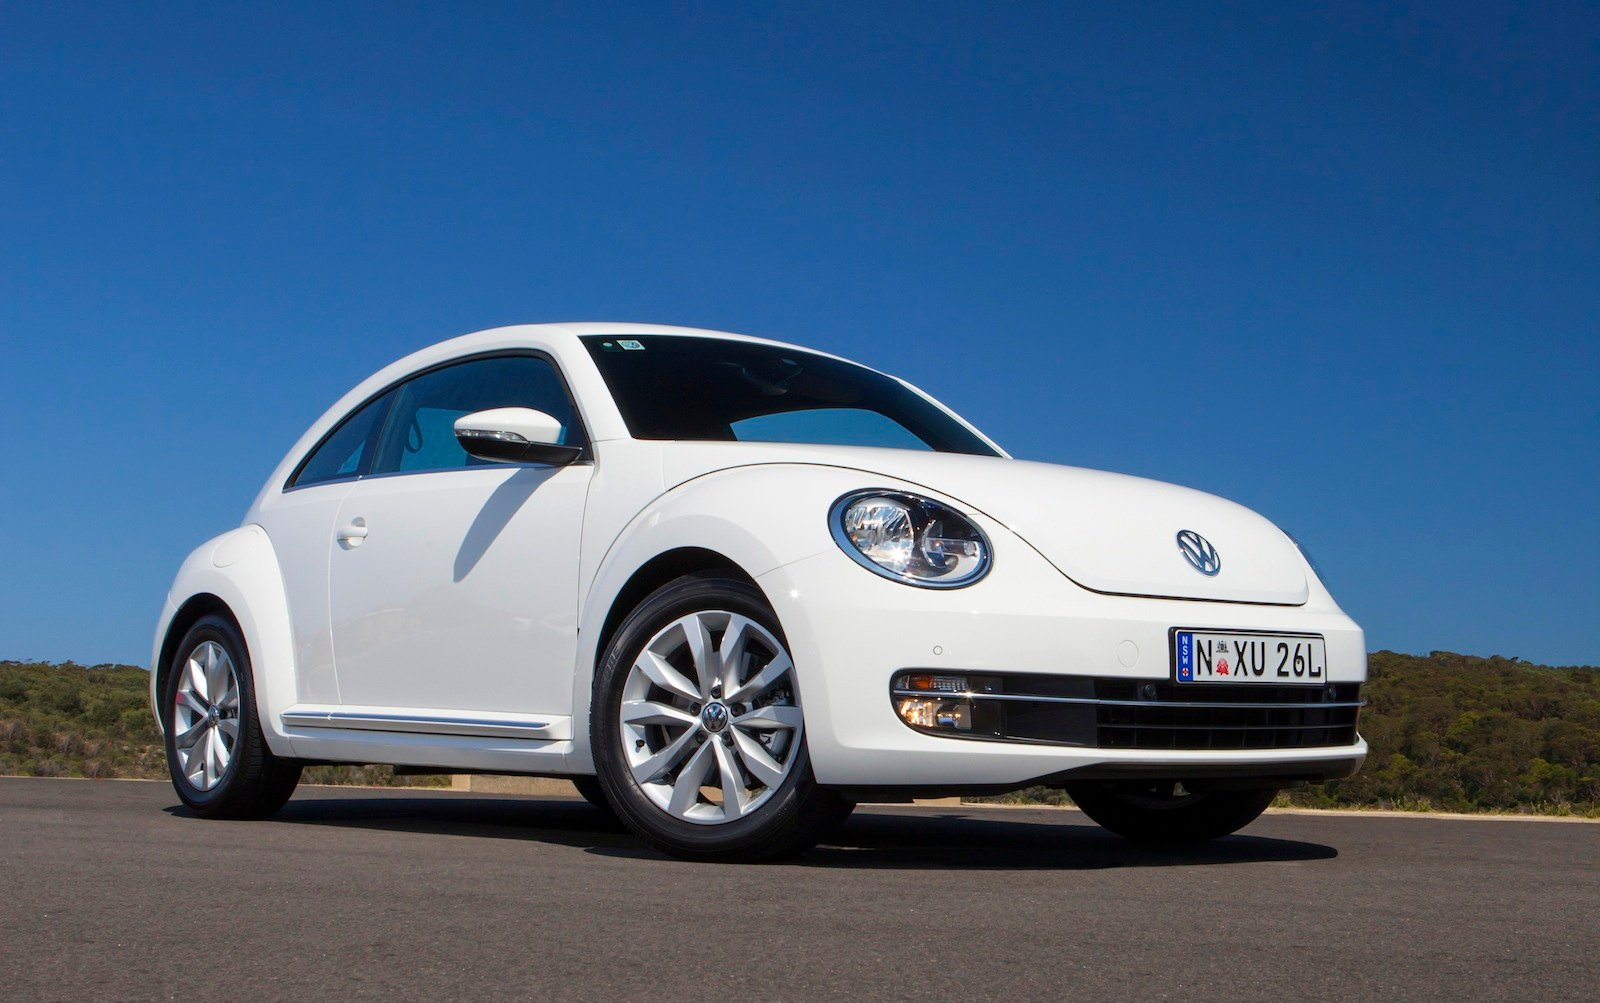 2013 volkswagen beetle pricing and specifications photos caradvice. Black Bedroom Furniture Sets. Home Design Ideas